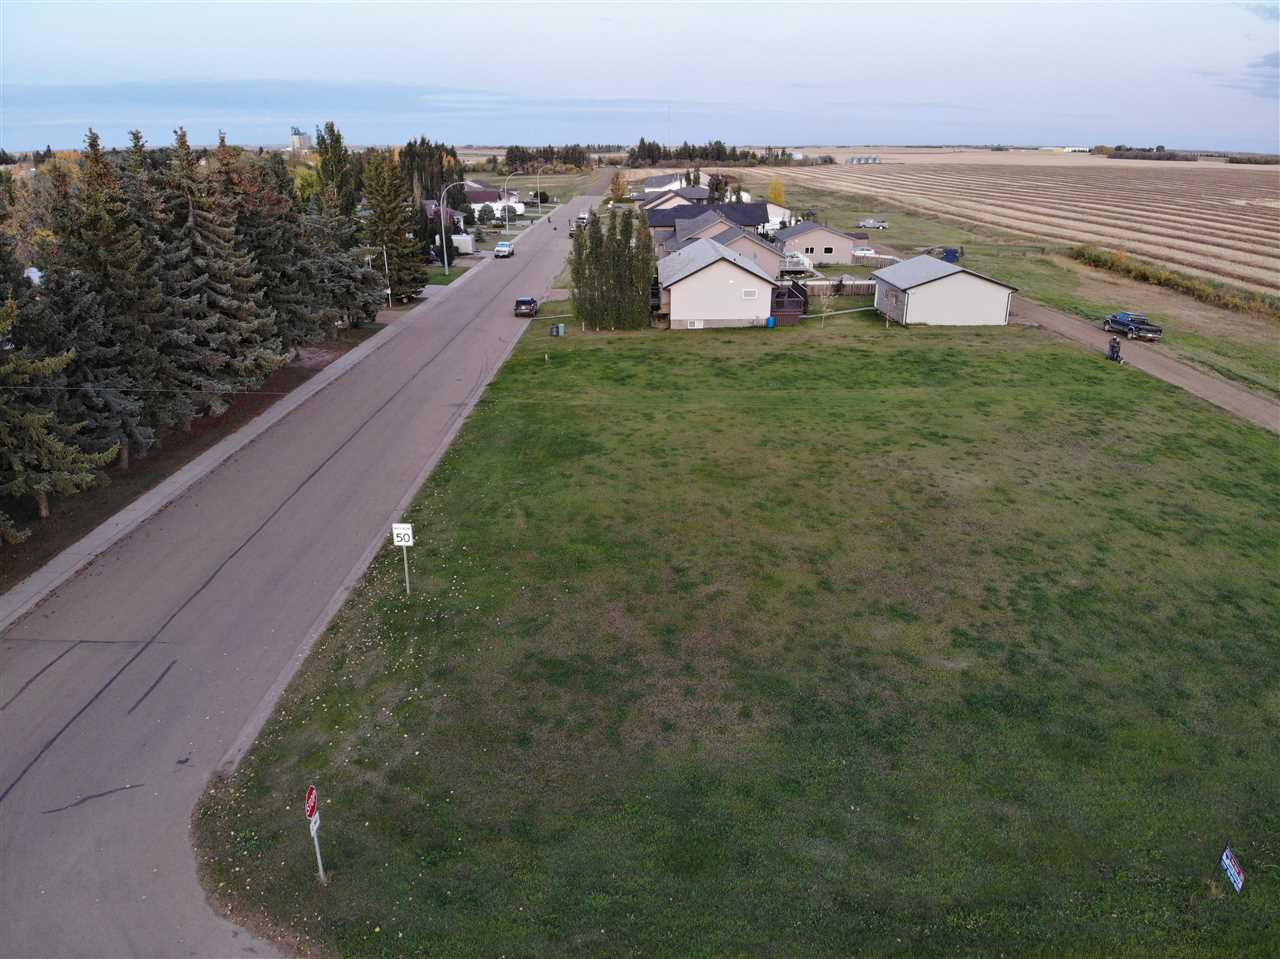 New, never built on Killam Lot in a Prime Location! Great lot in Killam with an Acreage feeling right on the edge of town looking out at the countryside, available now. Leveled 60x130ft lot with plenty of room for home, garage, and yard. Located close to the ball diamonds and heritage park, lot is level and ready to build on with full municipal services at the lot line. Private sale so no building timeline requirements, and great lot for privacy. Second lot right besdie it is available for double lot purchase.  Asking $31.500.00